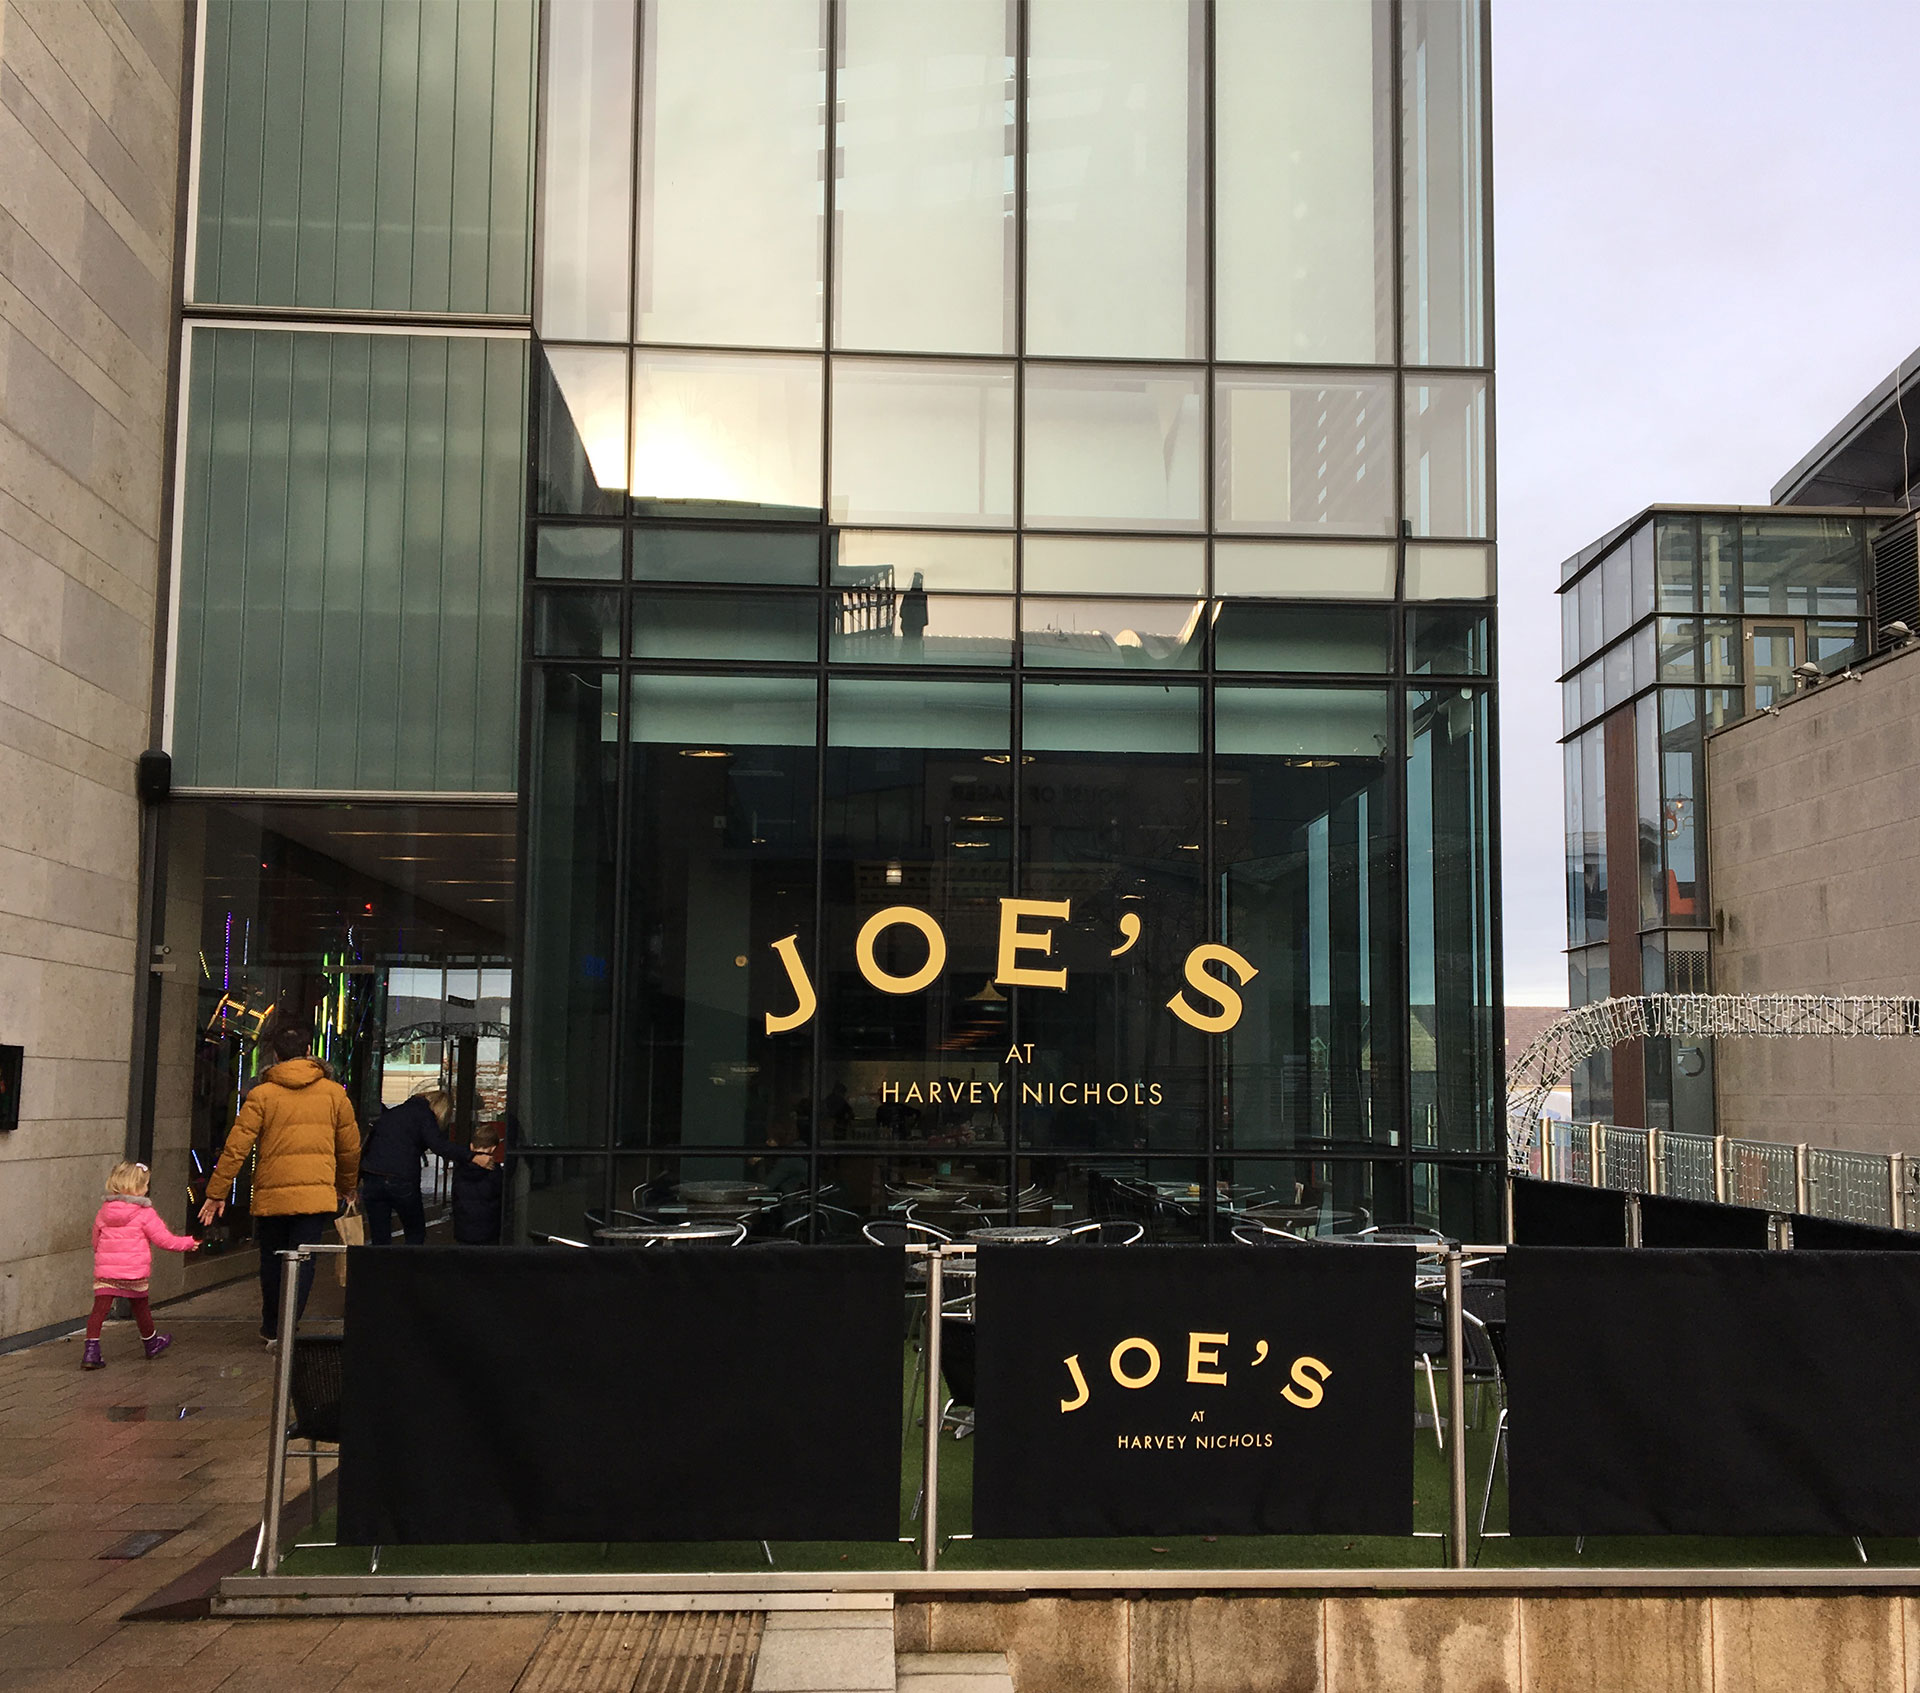 After 6 years in Dundrum, we are closing our cafe in Harvey Nichols this July to make room for another exciting food brand! Thank you to all our loyal staff and customers over the years. We hope to see you soon. Please do visit us in the city centre to get your Joe's fix.